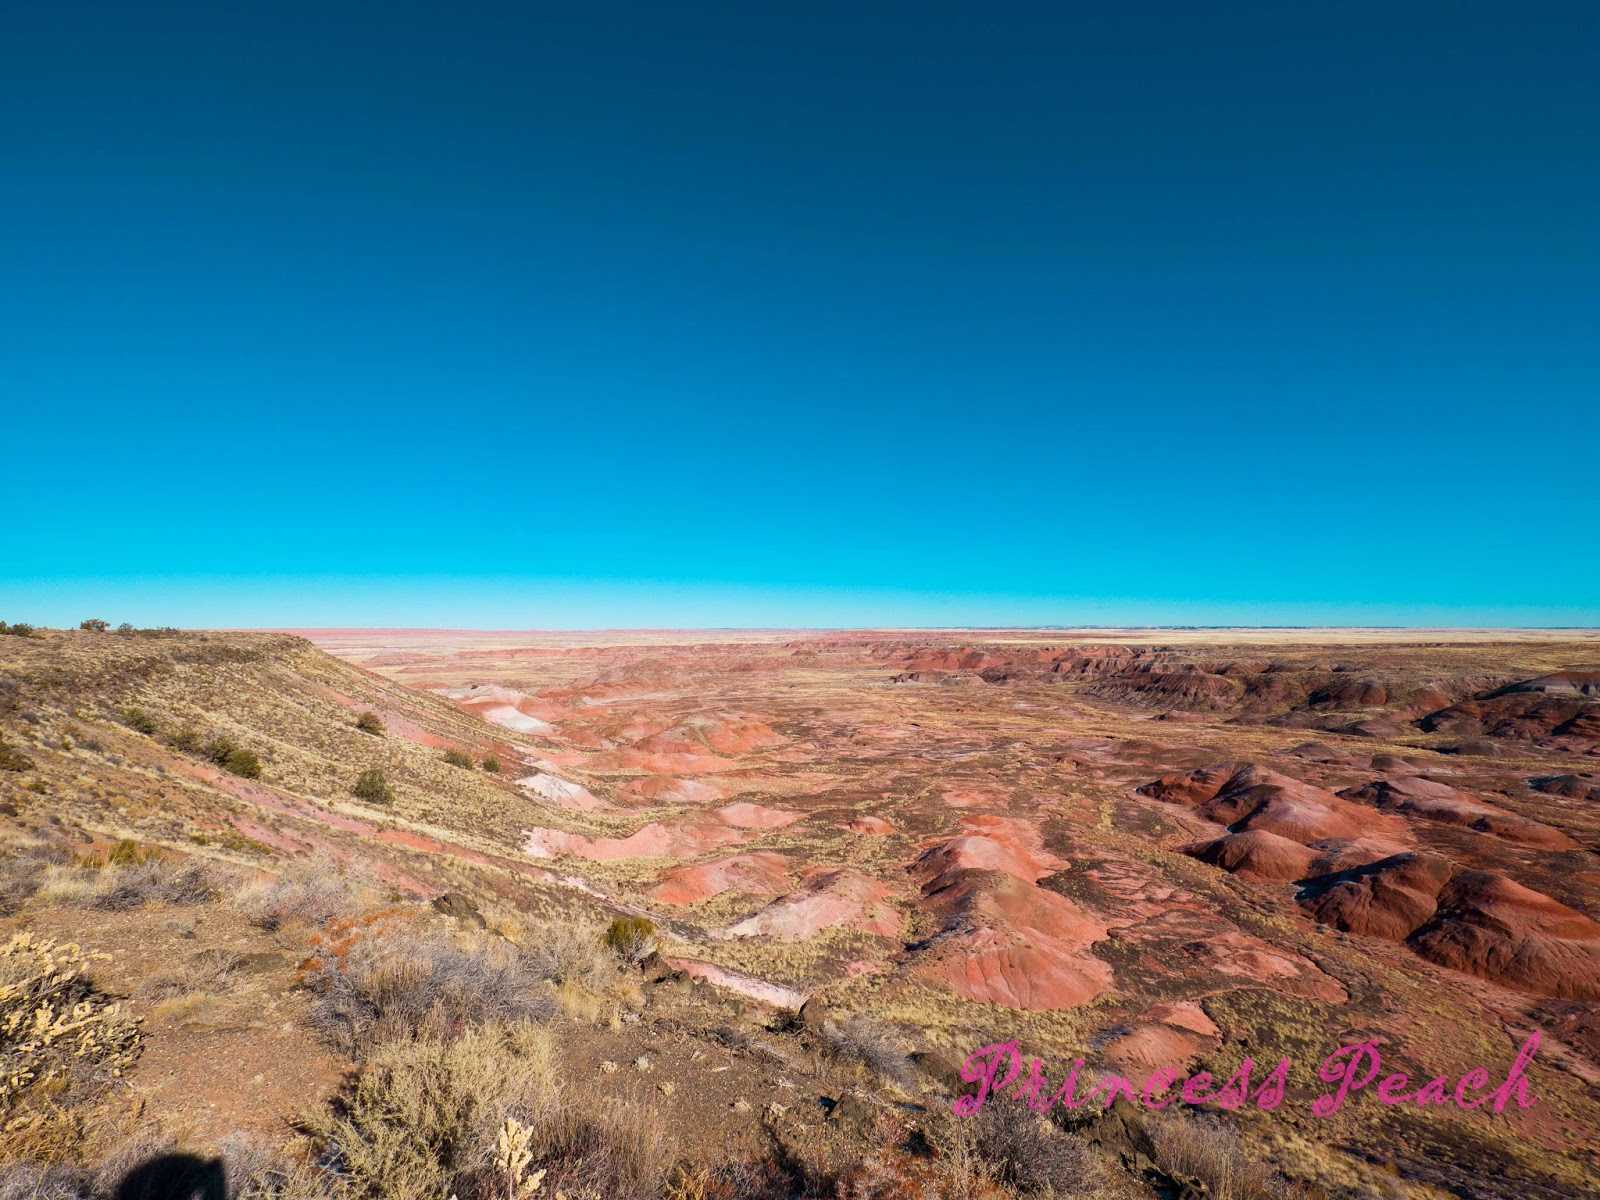 Petrified-Forest-National-Park-石化森林國家公園-Painted-Dessert